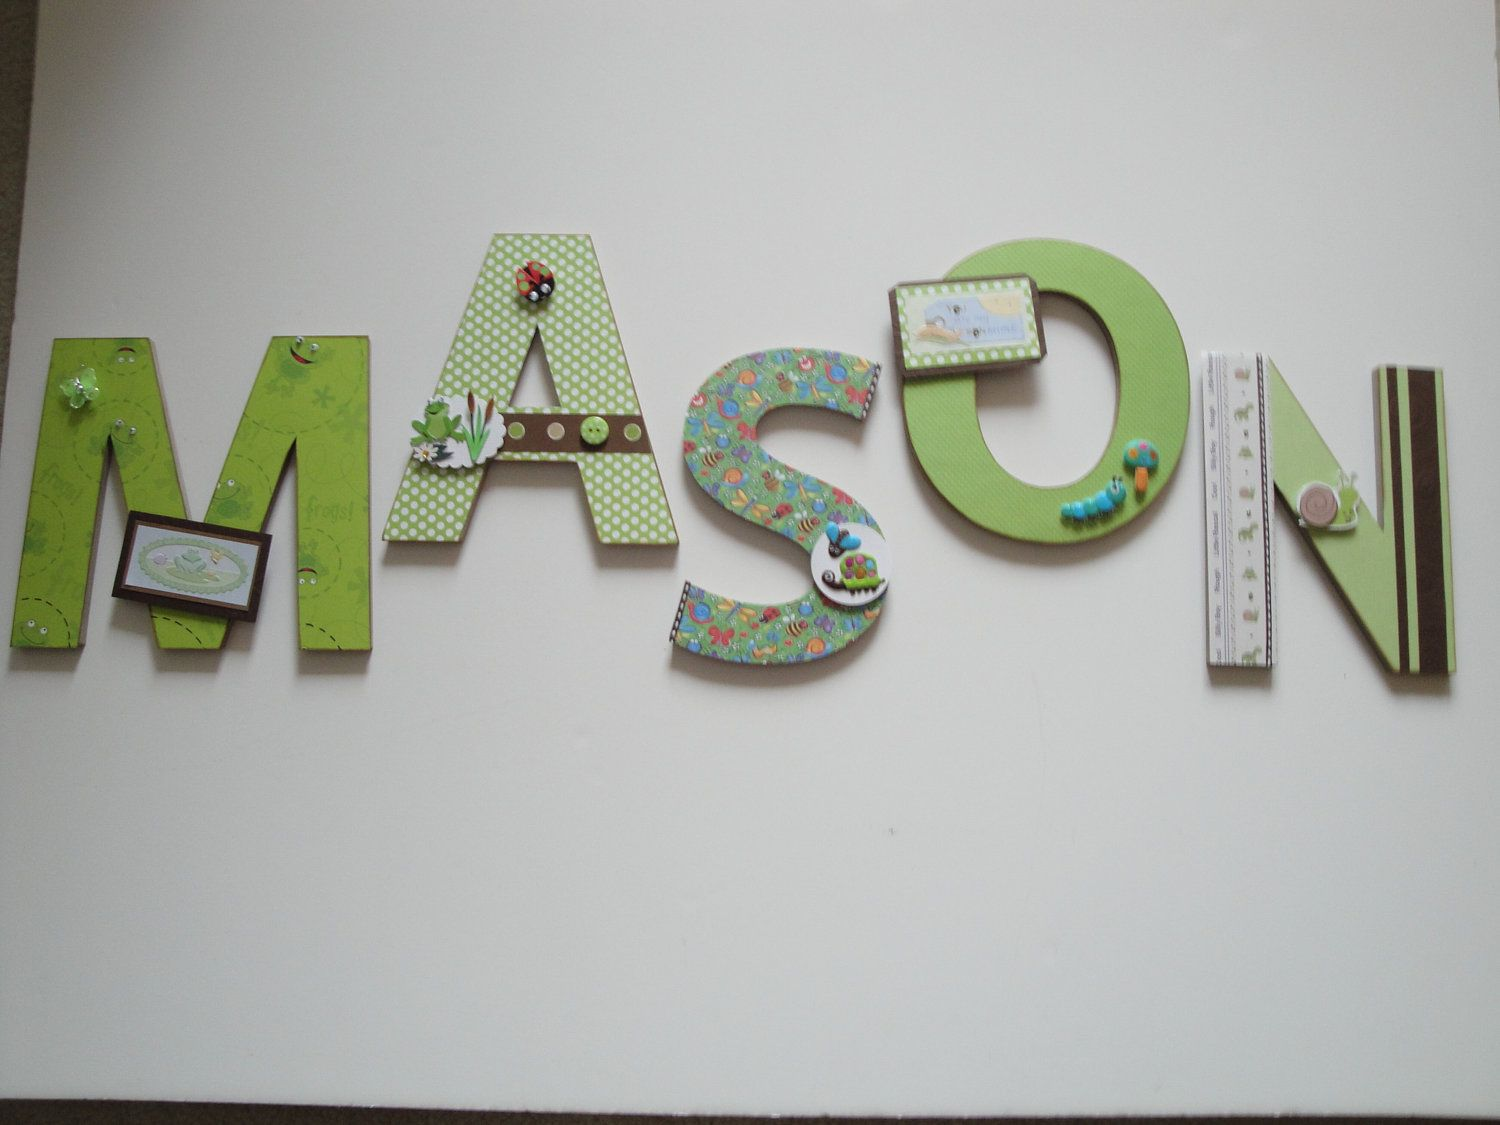 Beautiful Baby Nursery Letters, Boys Room Decor,Baby Shower Gift, Frogs,Snails, Bugs  Theme,Holiday Gift,3D Custom Wall Letters. $19.99 Each Letter, Via Etsy.